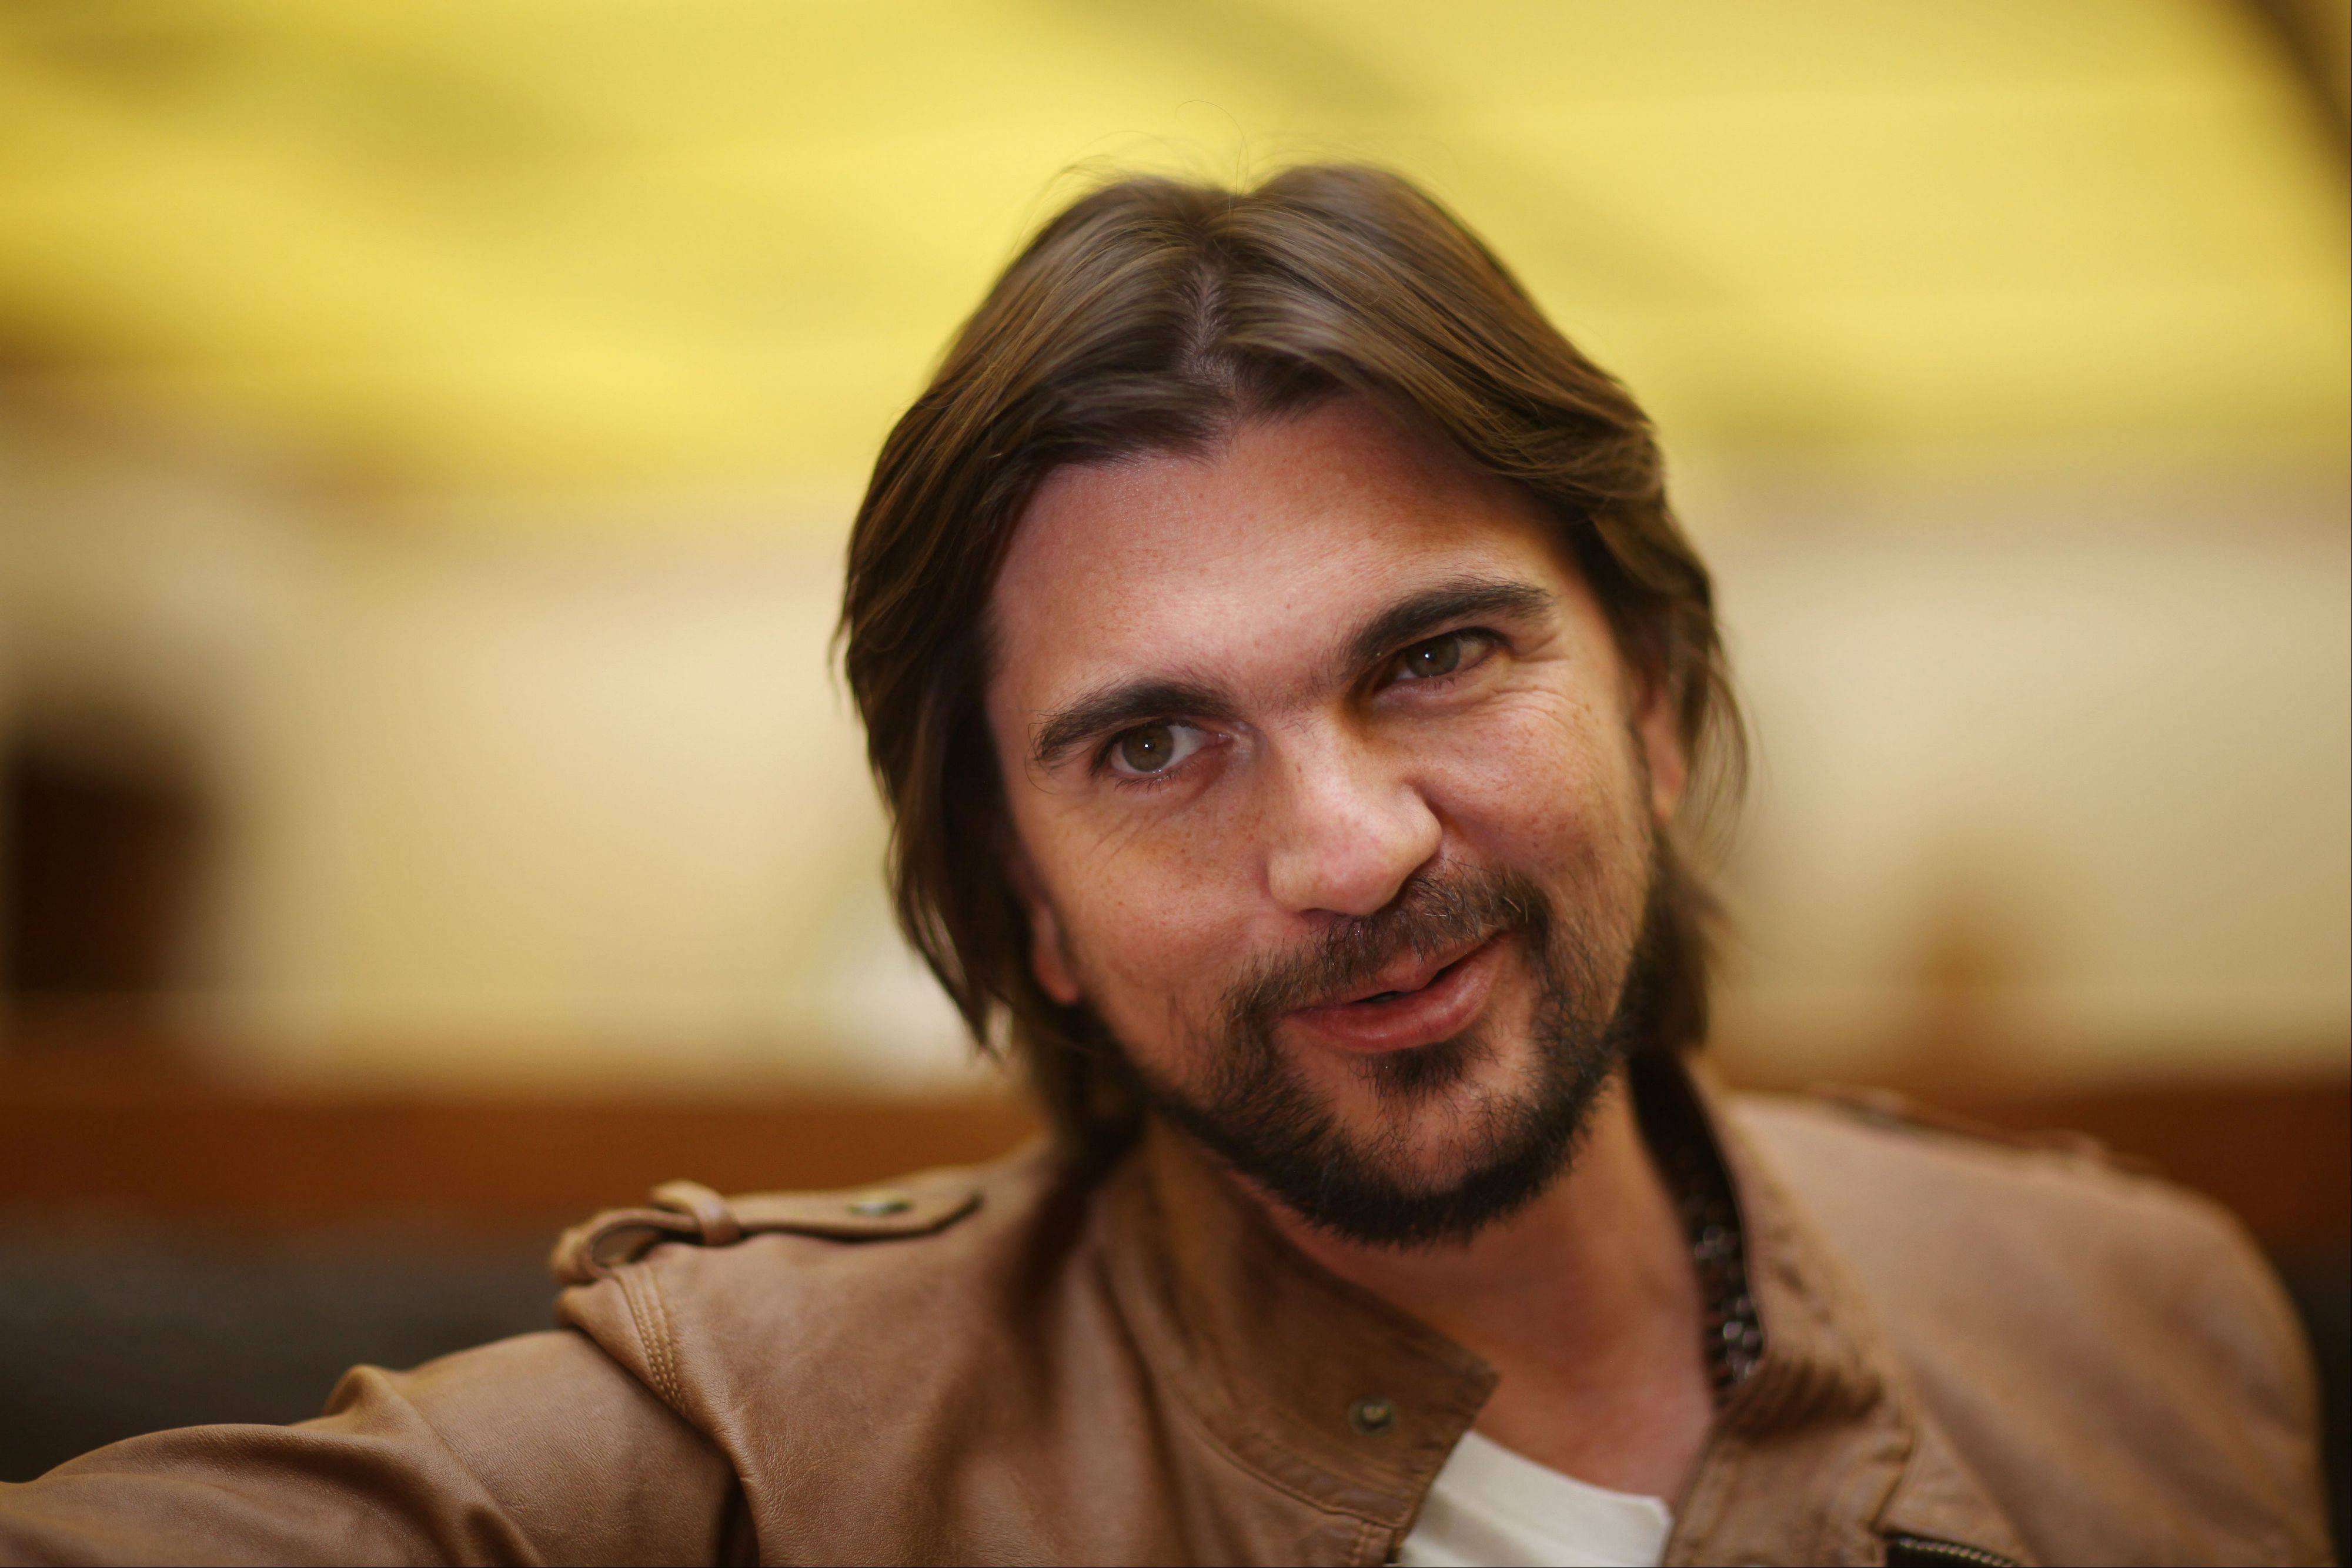 Colombia's singer Juanes has received five nominations for the 13th annual Latin Grammy Awards.